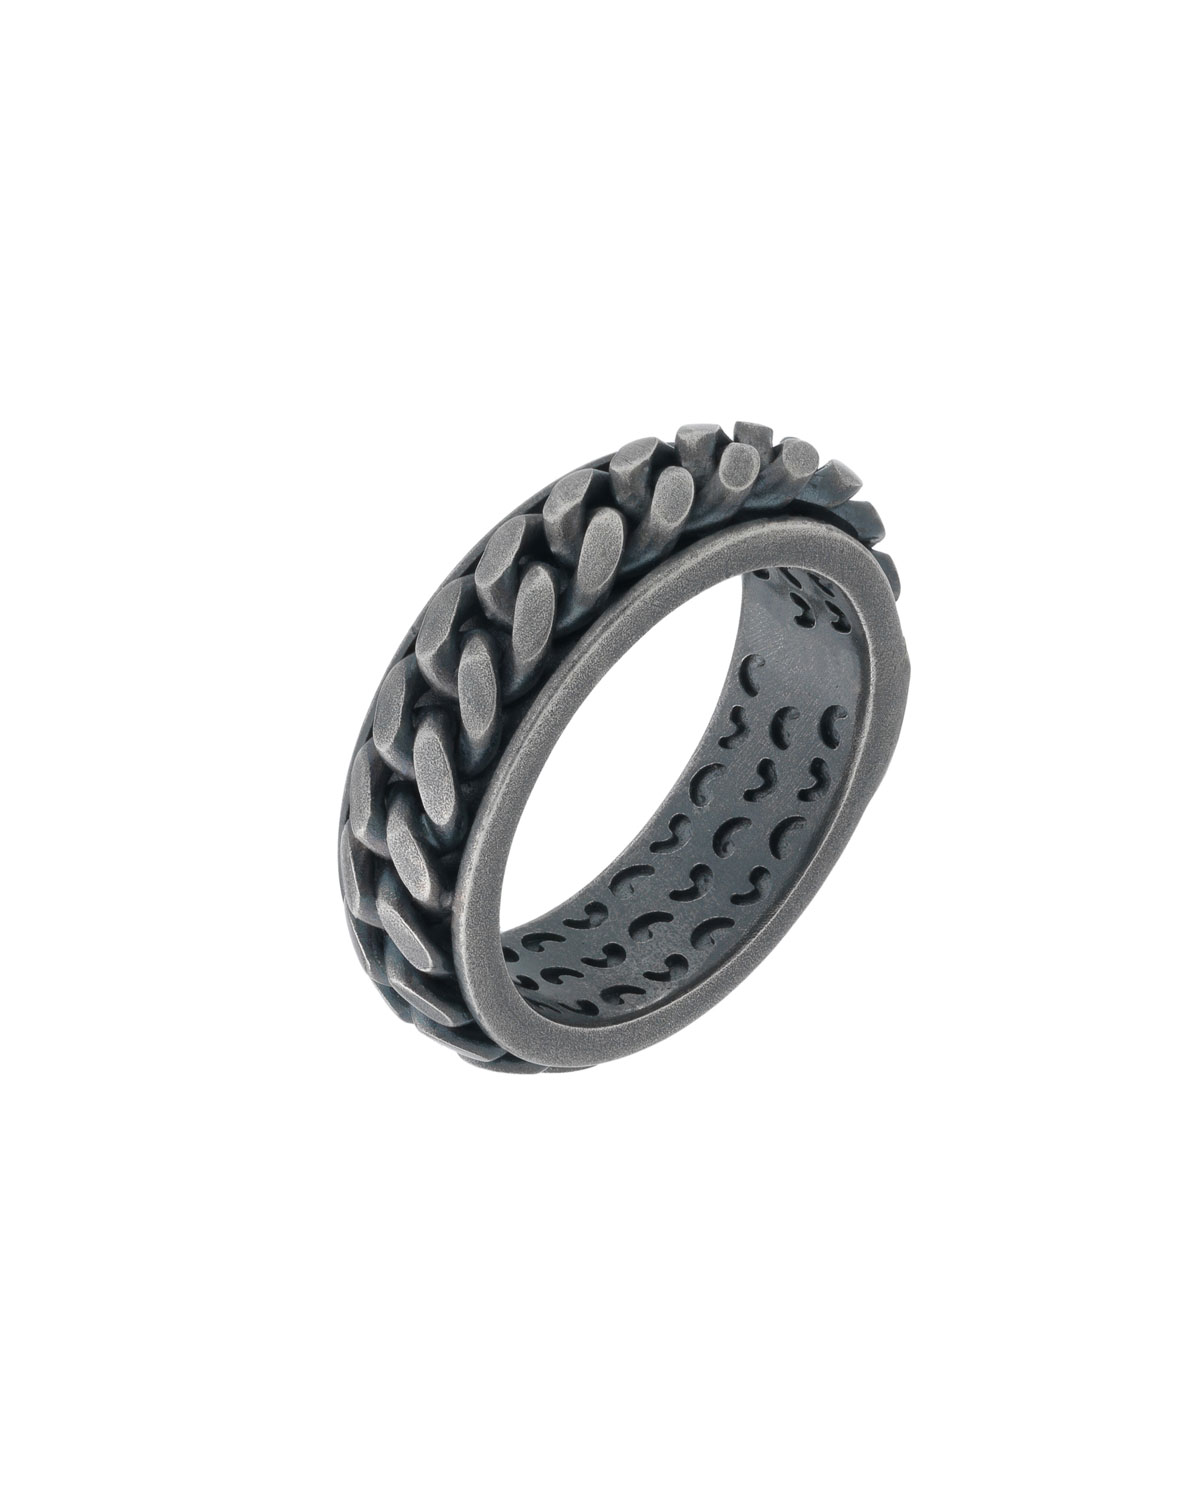 MARCO DAL MASO MEN'S LASH OXIDIZED SILVER CHAIN BAND RING, SIZE 10